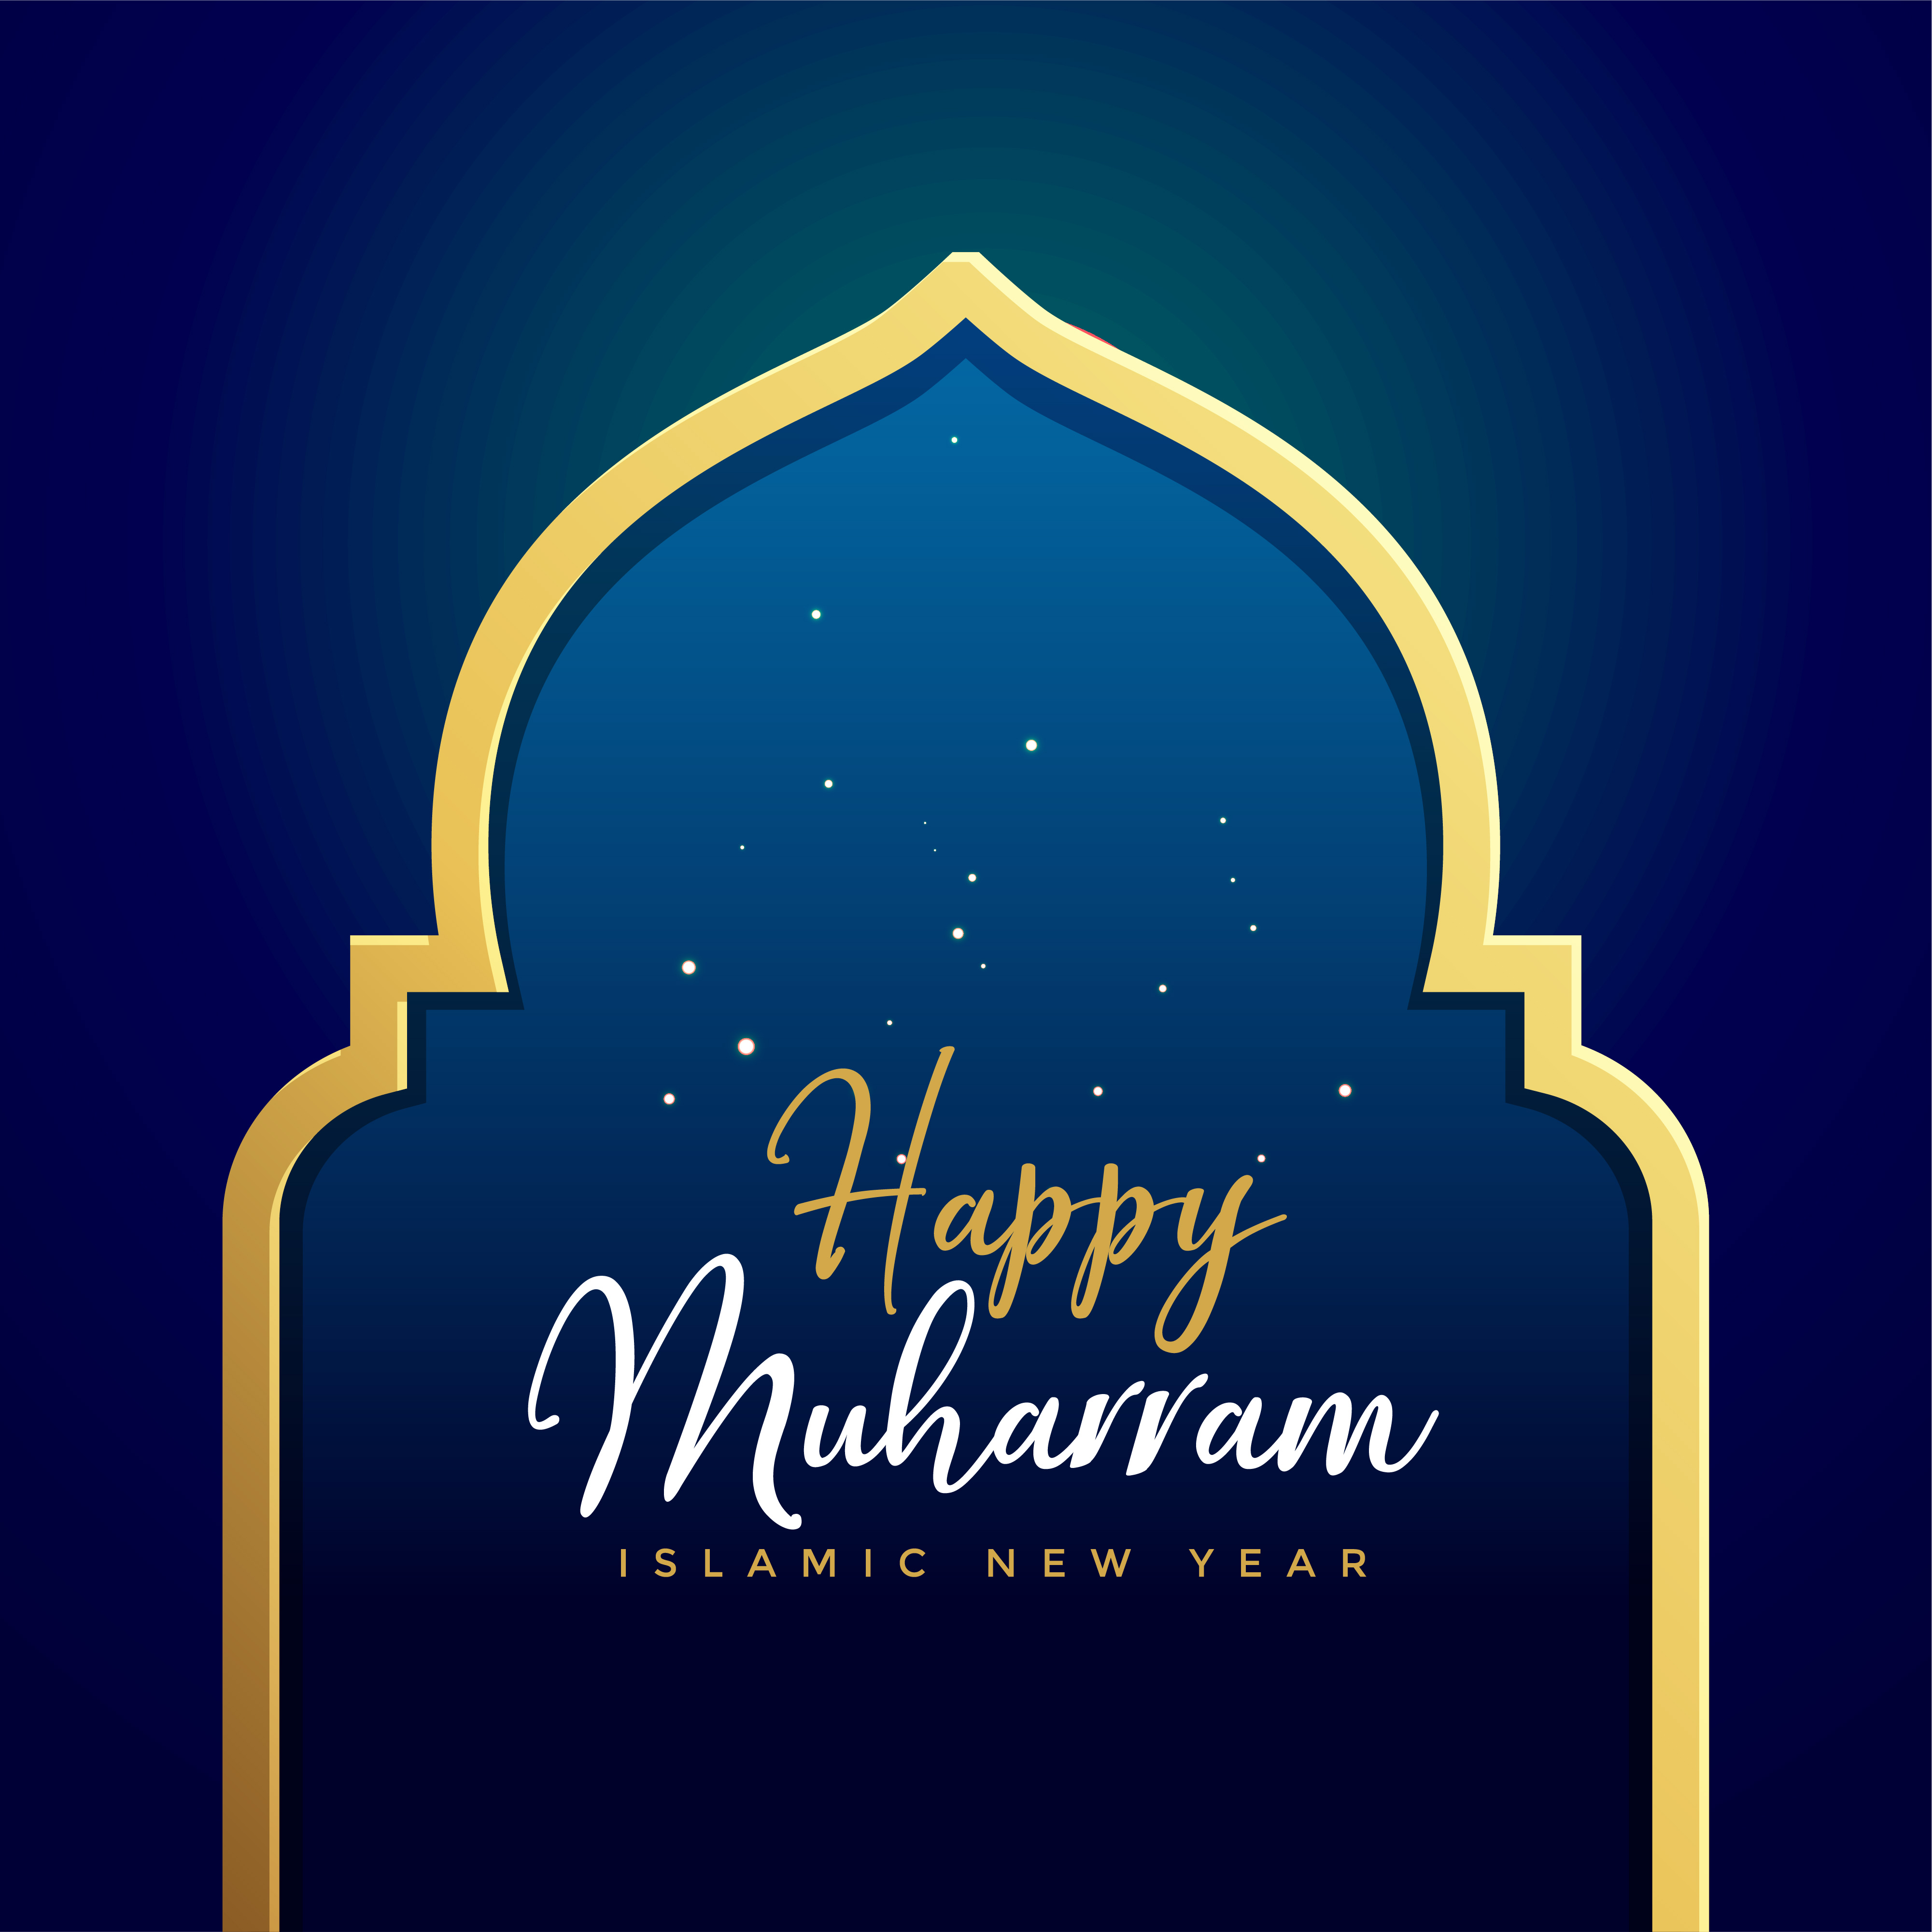 Happy Muharram Islamic Background With Golden Gate Download Free